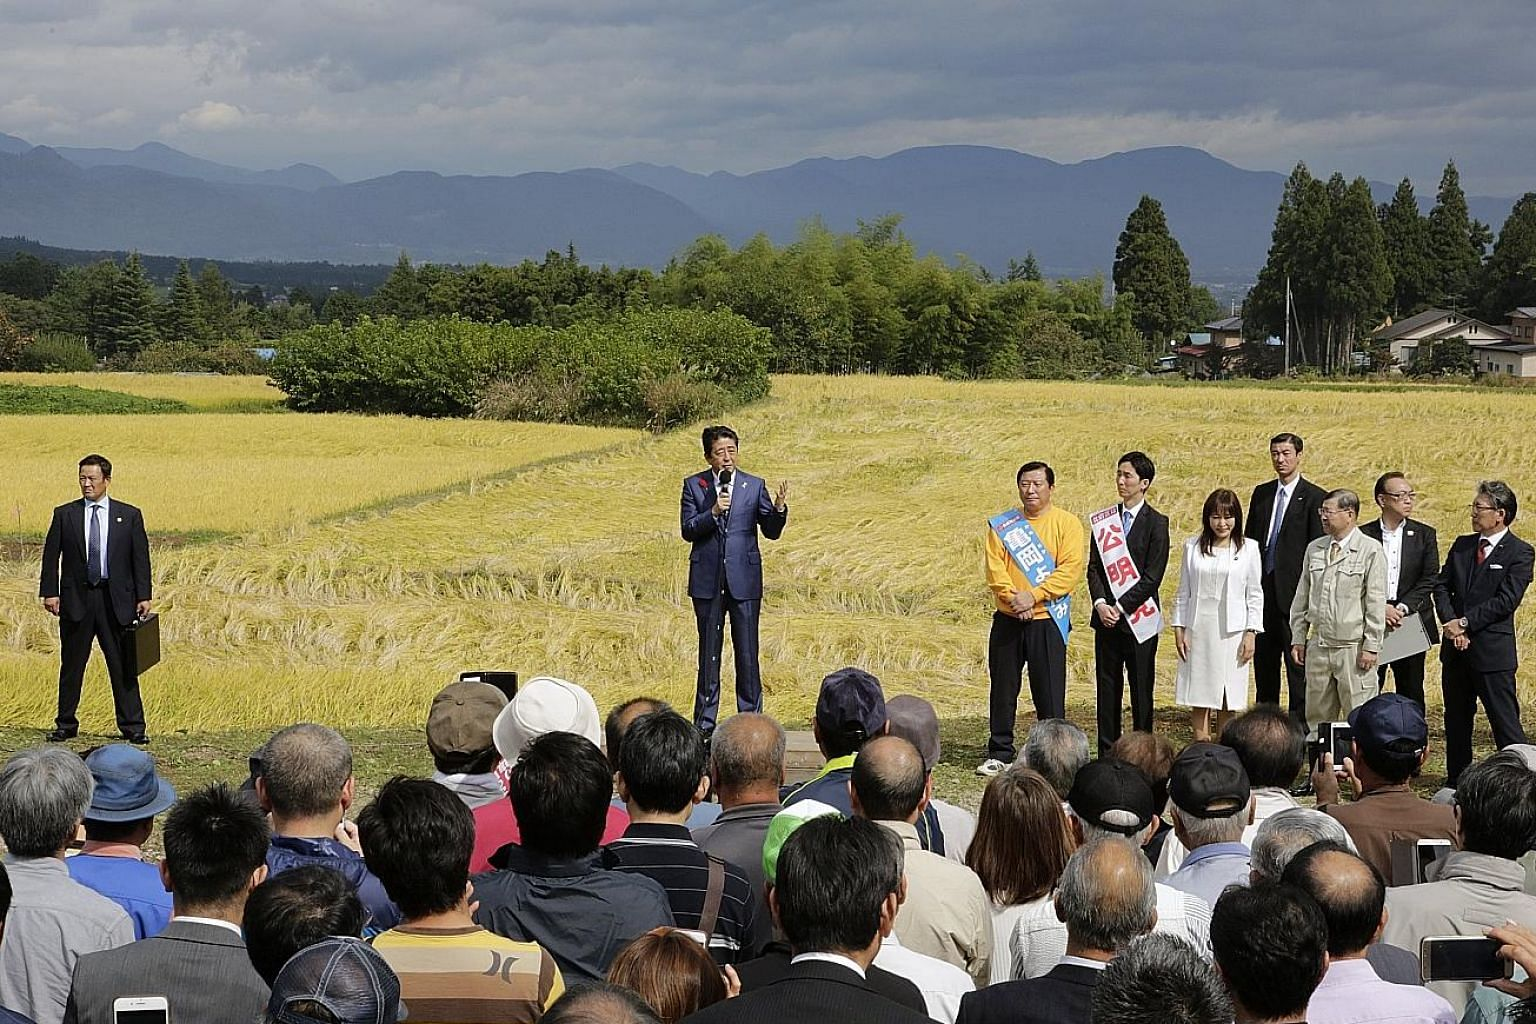 Tokyo Governor Yuriko Koike, who founded the Kibo no To (Party of Hope), speaking at a rally for party candidate Kaoru Matsuzawa, a lawyer, in the upmarket district of Azabujuban last week. Constitutional Democratic Party of Japan head Yukio Edano at